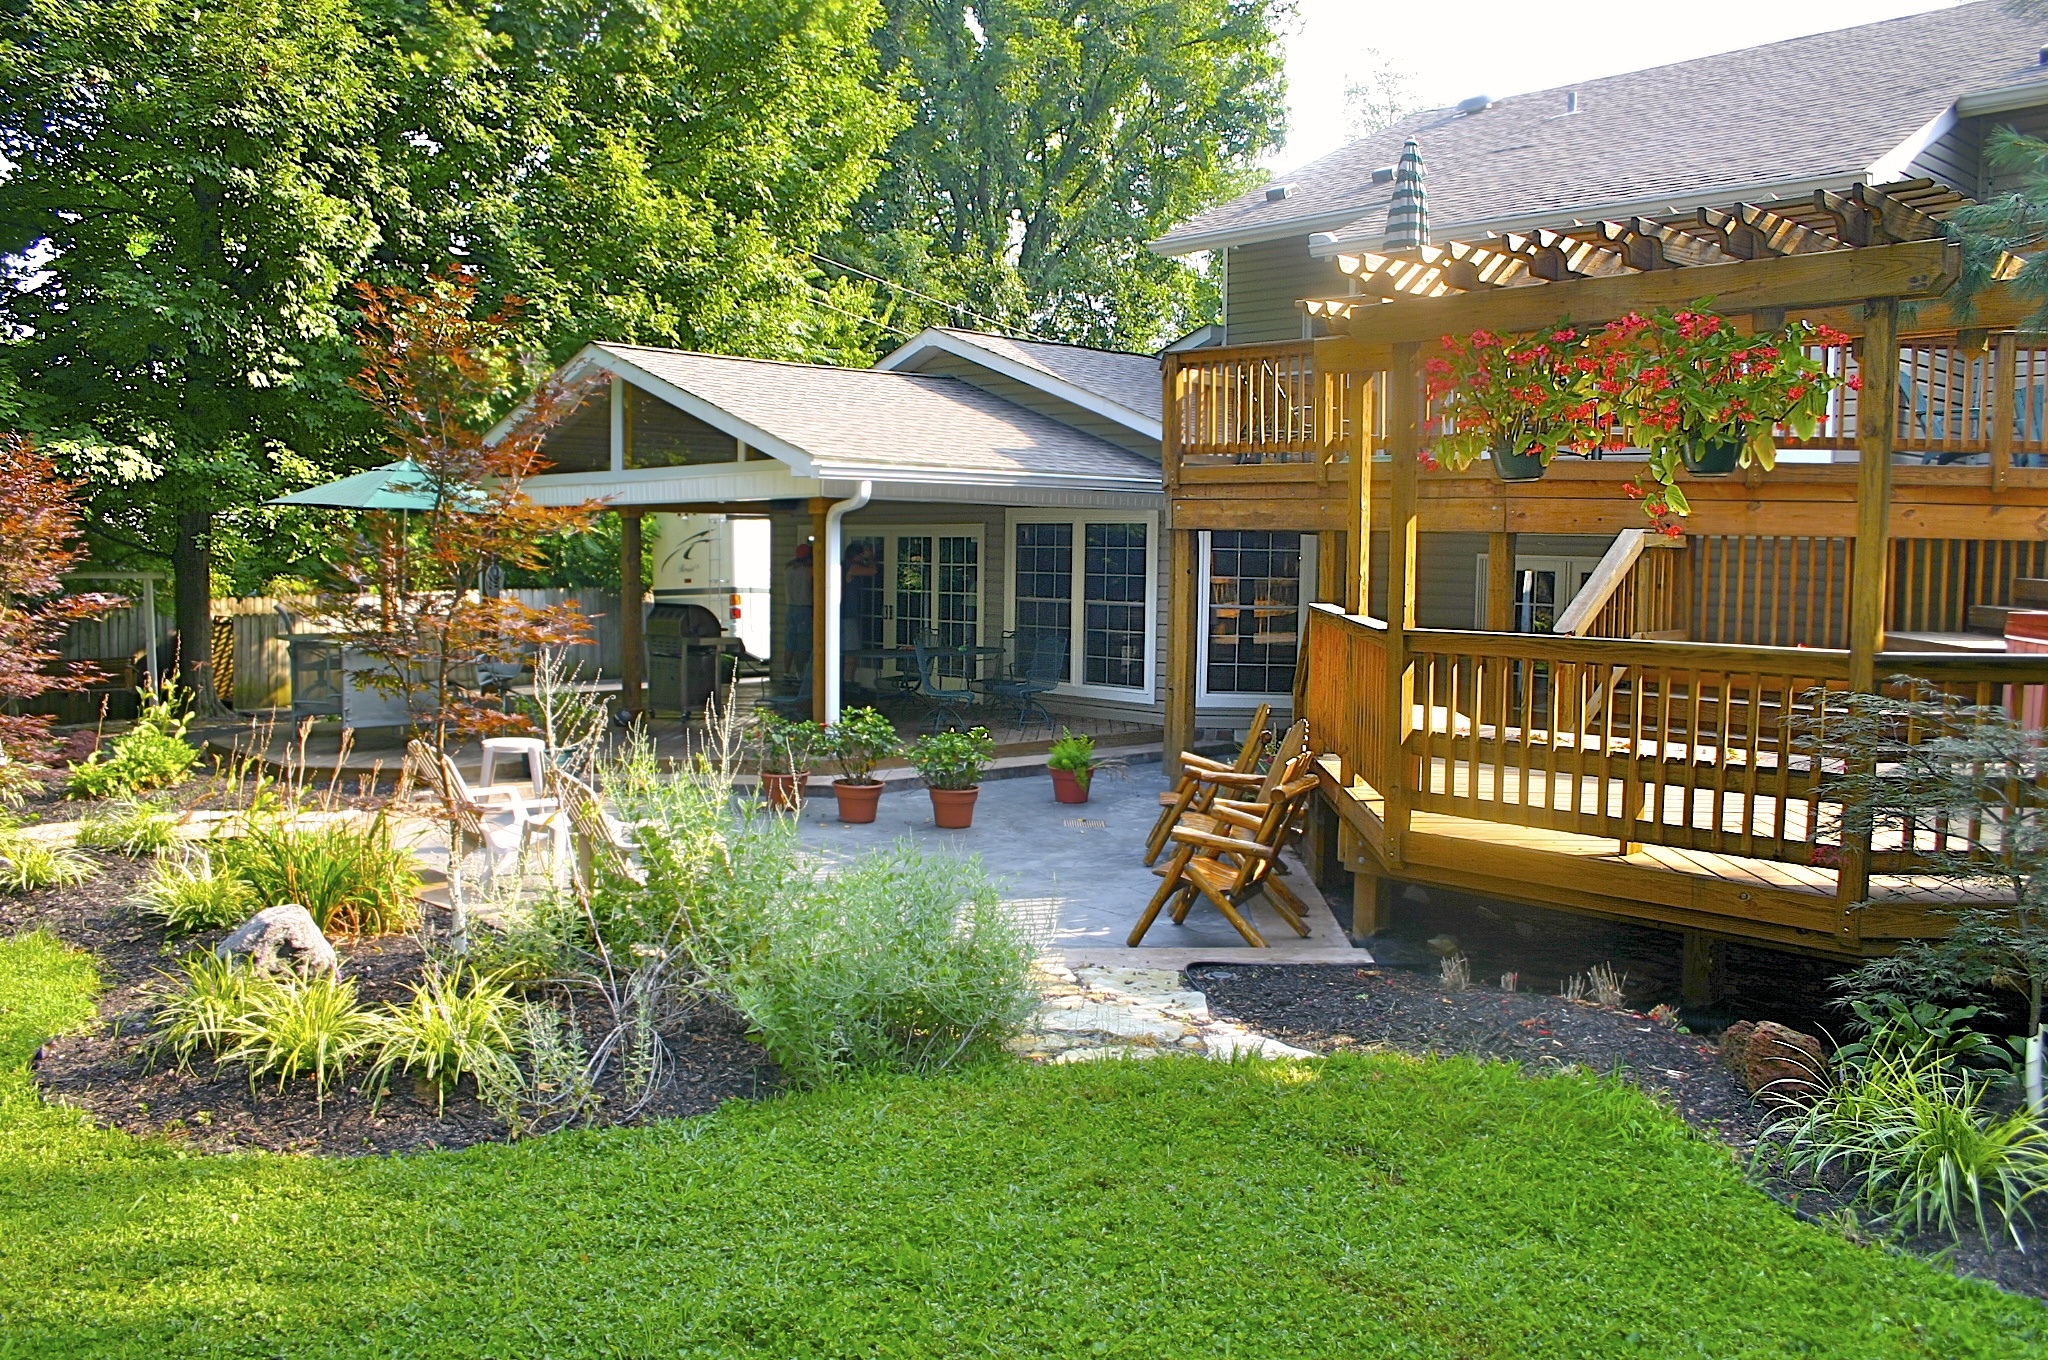 Paver Patios In Lexington And Louisville, Ky  American. Patio Stone Entrance. Patio Restaurant Union New Jersey. Install Patio Heaters. Patio Store Naples Fl. Patio Set For Small Deck. Patio Paver Molds. Patio Pavers Uneven Ground. Patio Paving Northampton